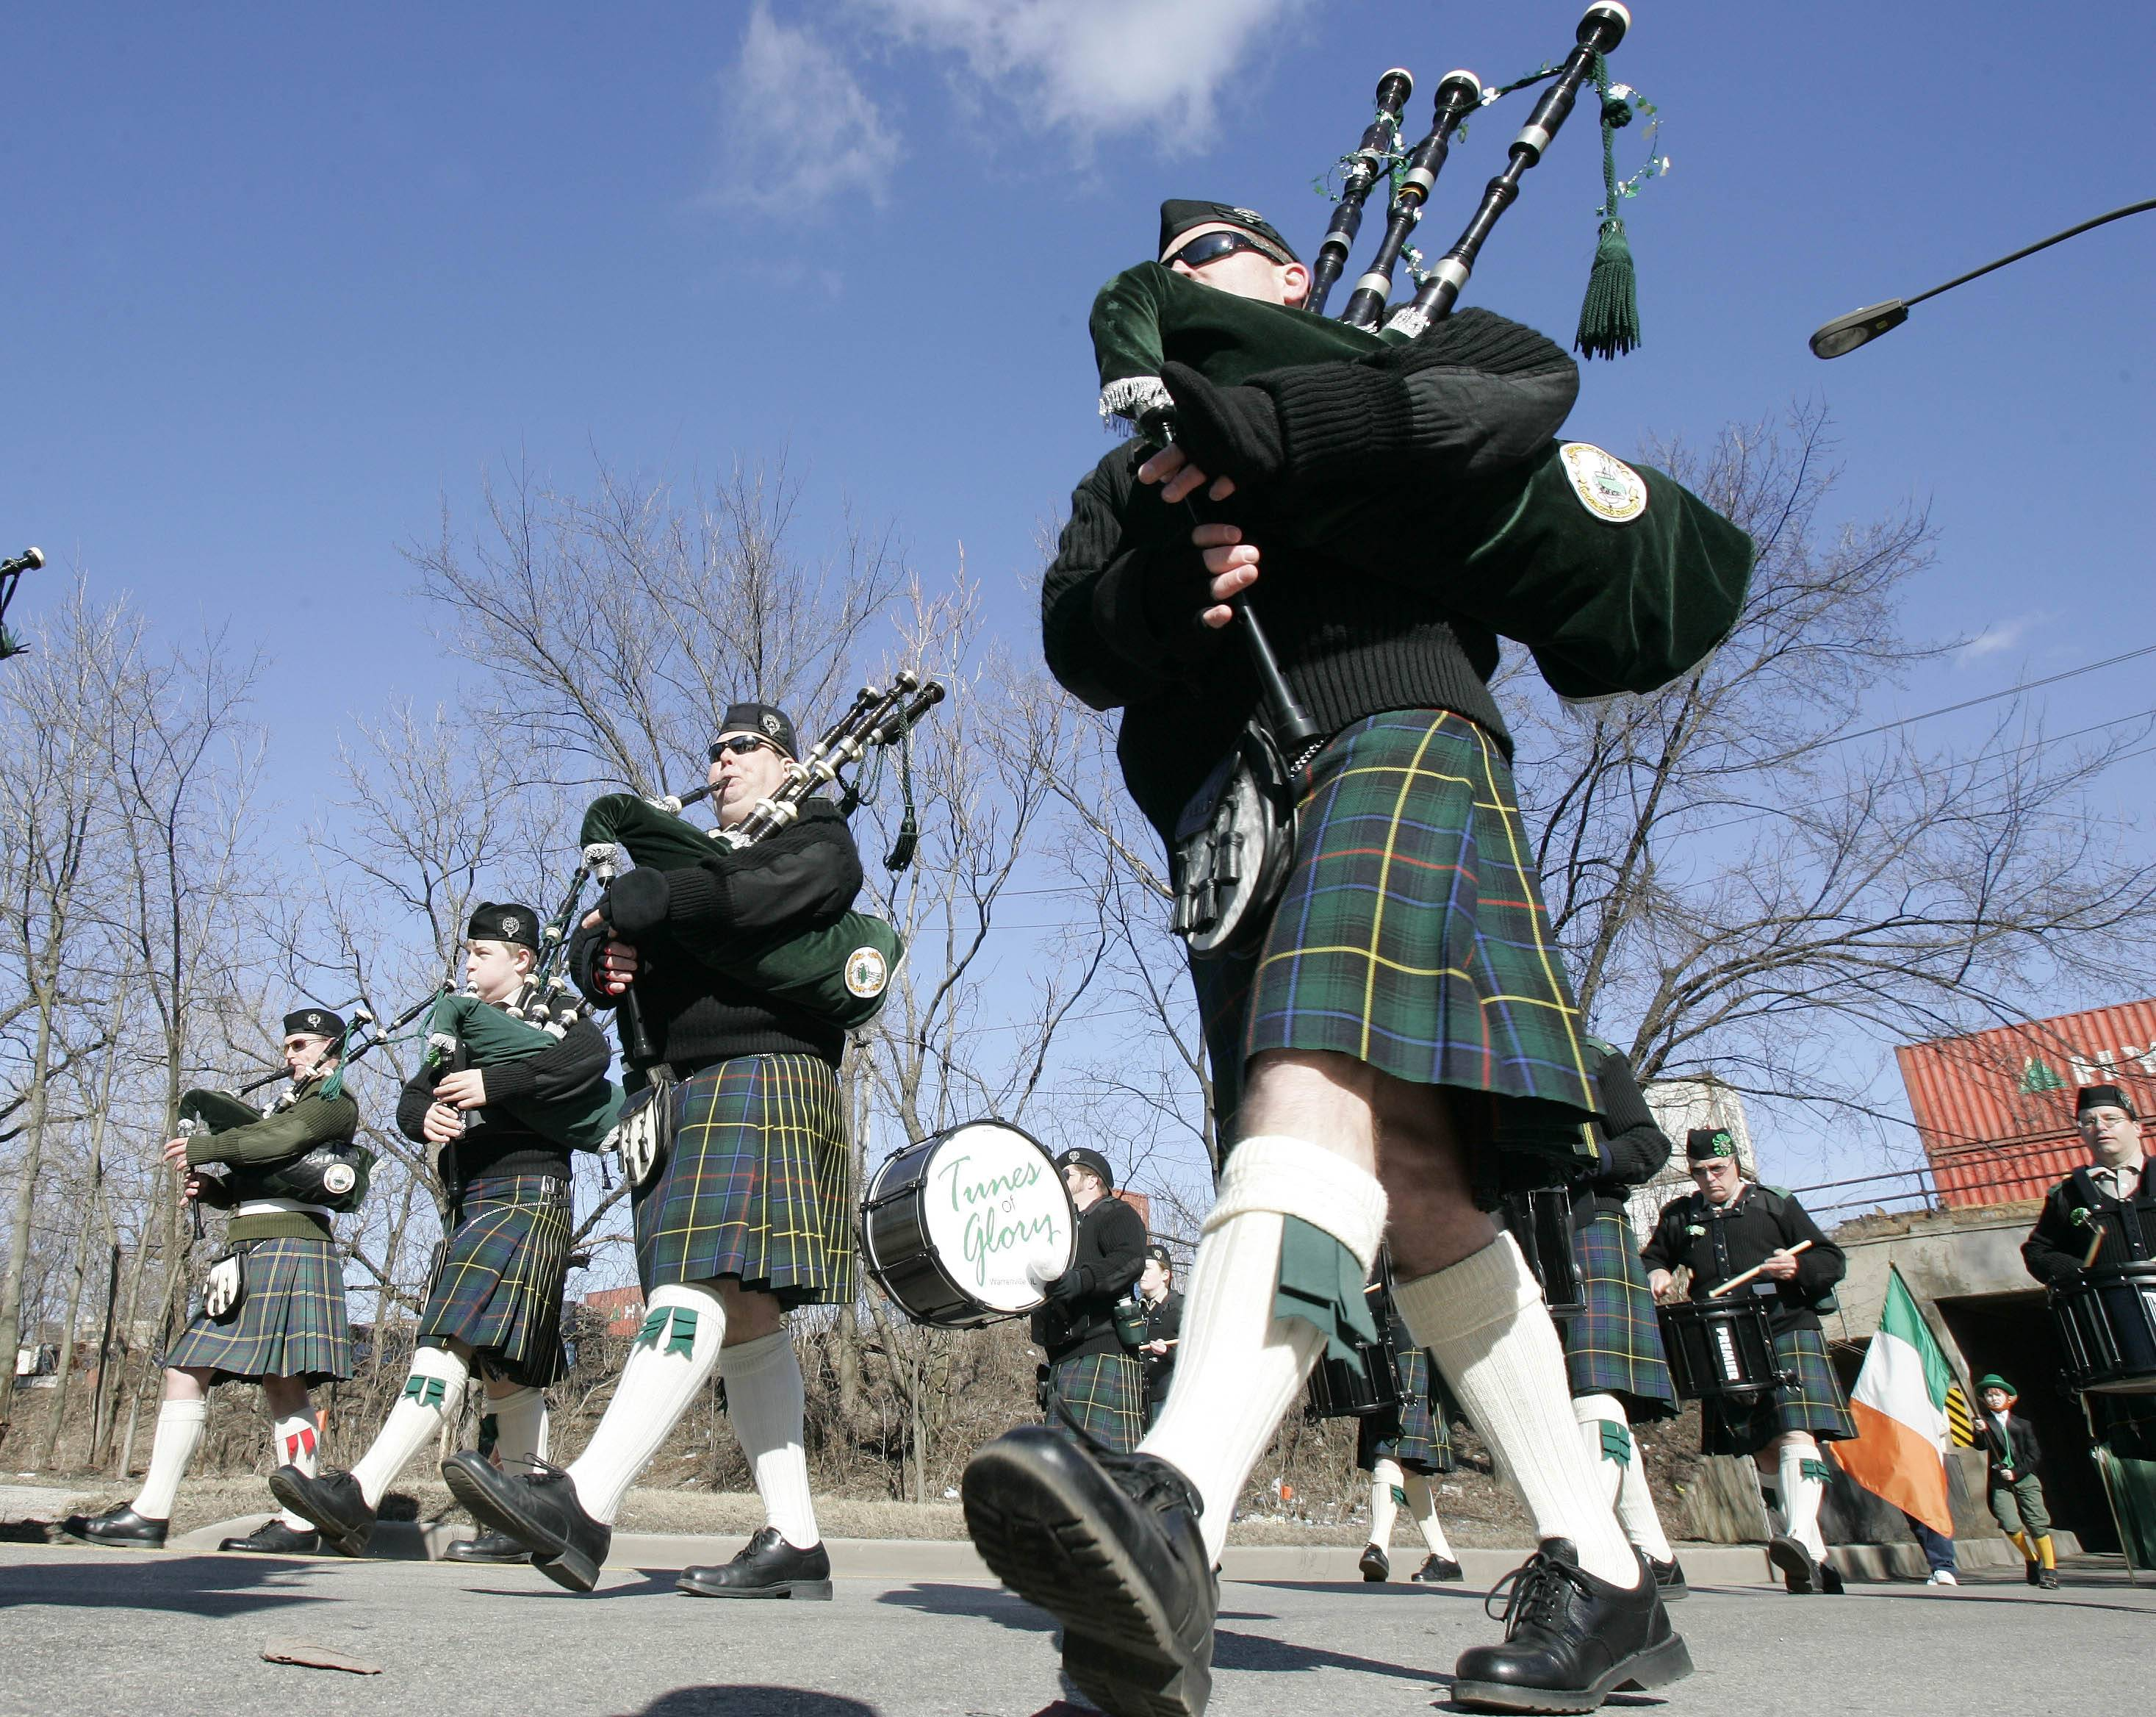 Bagpipers abound during St. Patrick's Day parades in the suburbs.